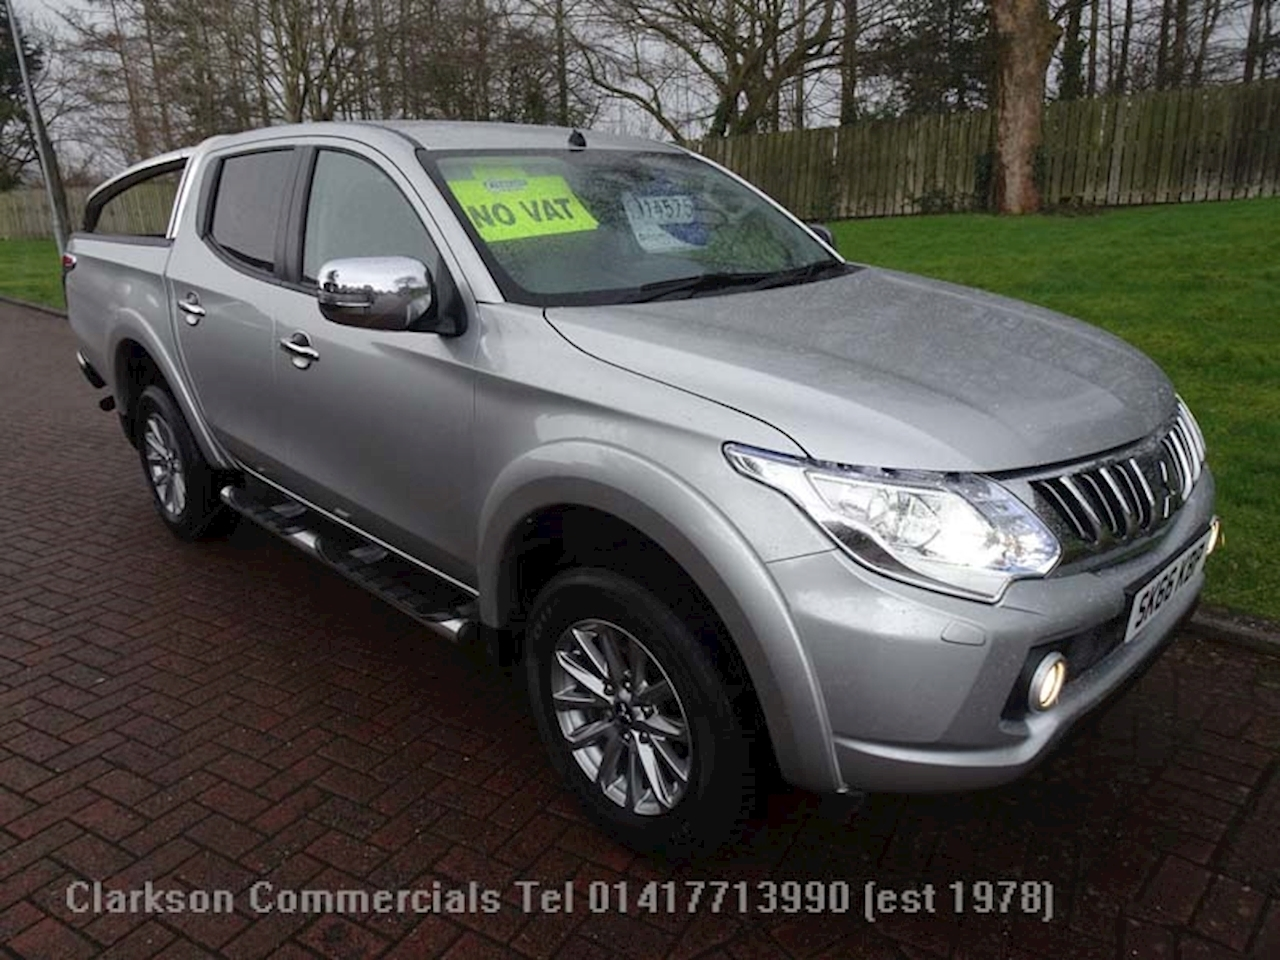 Mitsubishi L200 Di-D 4X4 Barbarian Dcb Pick-Up 2.4 Automatic Diesel